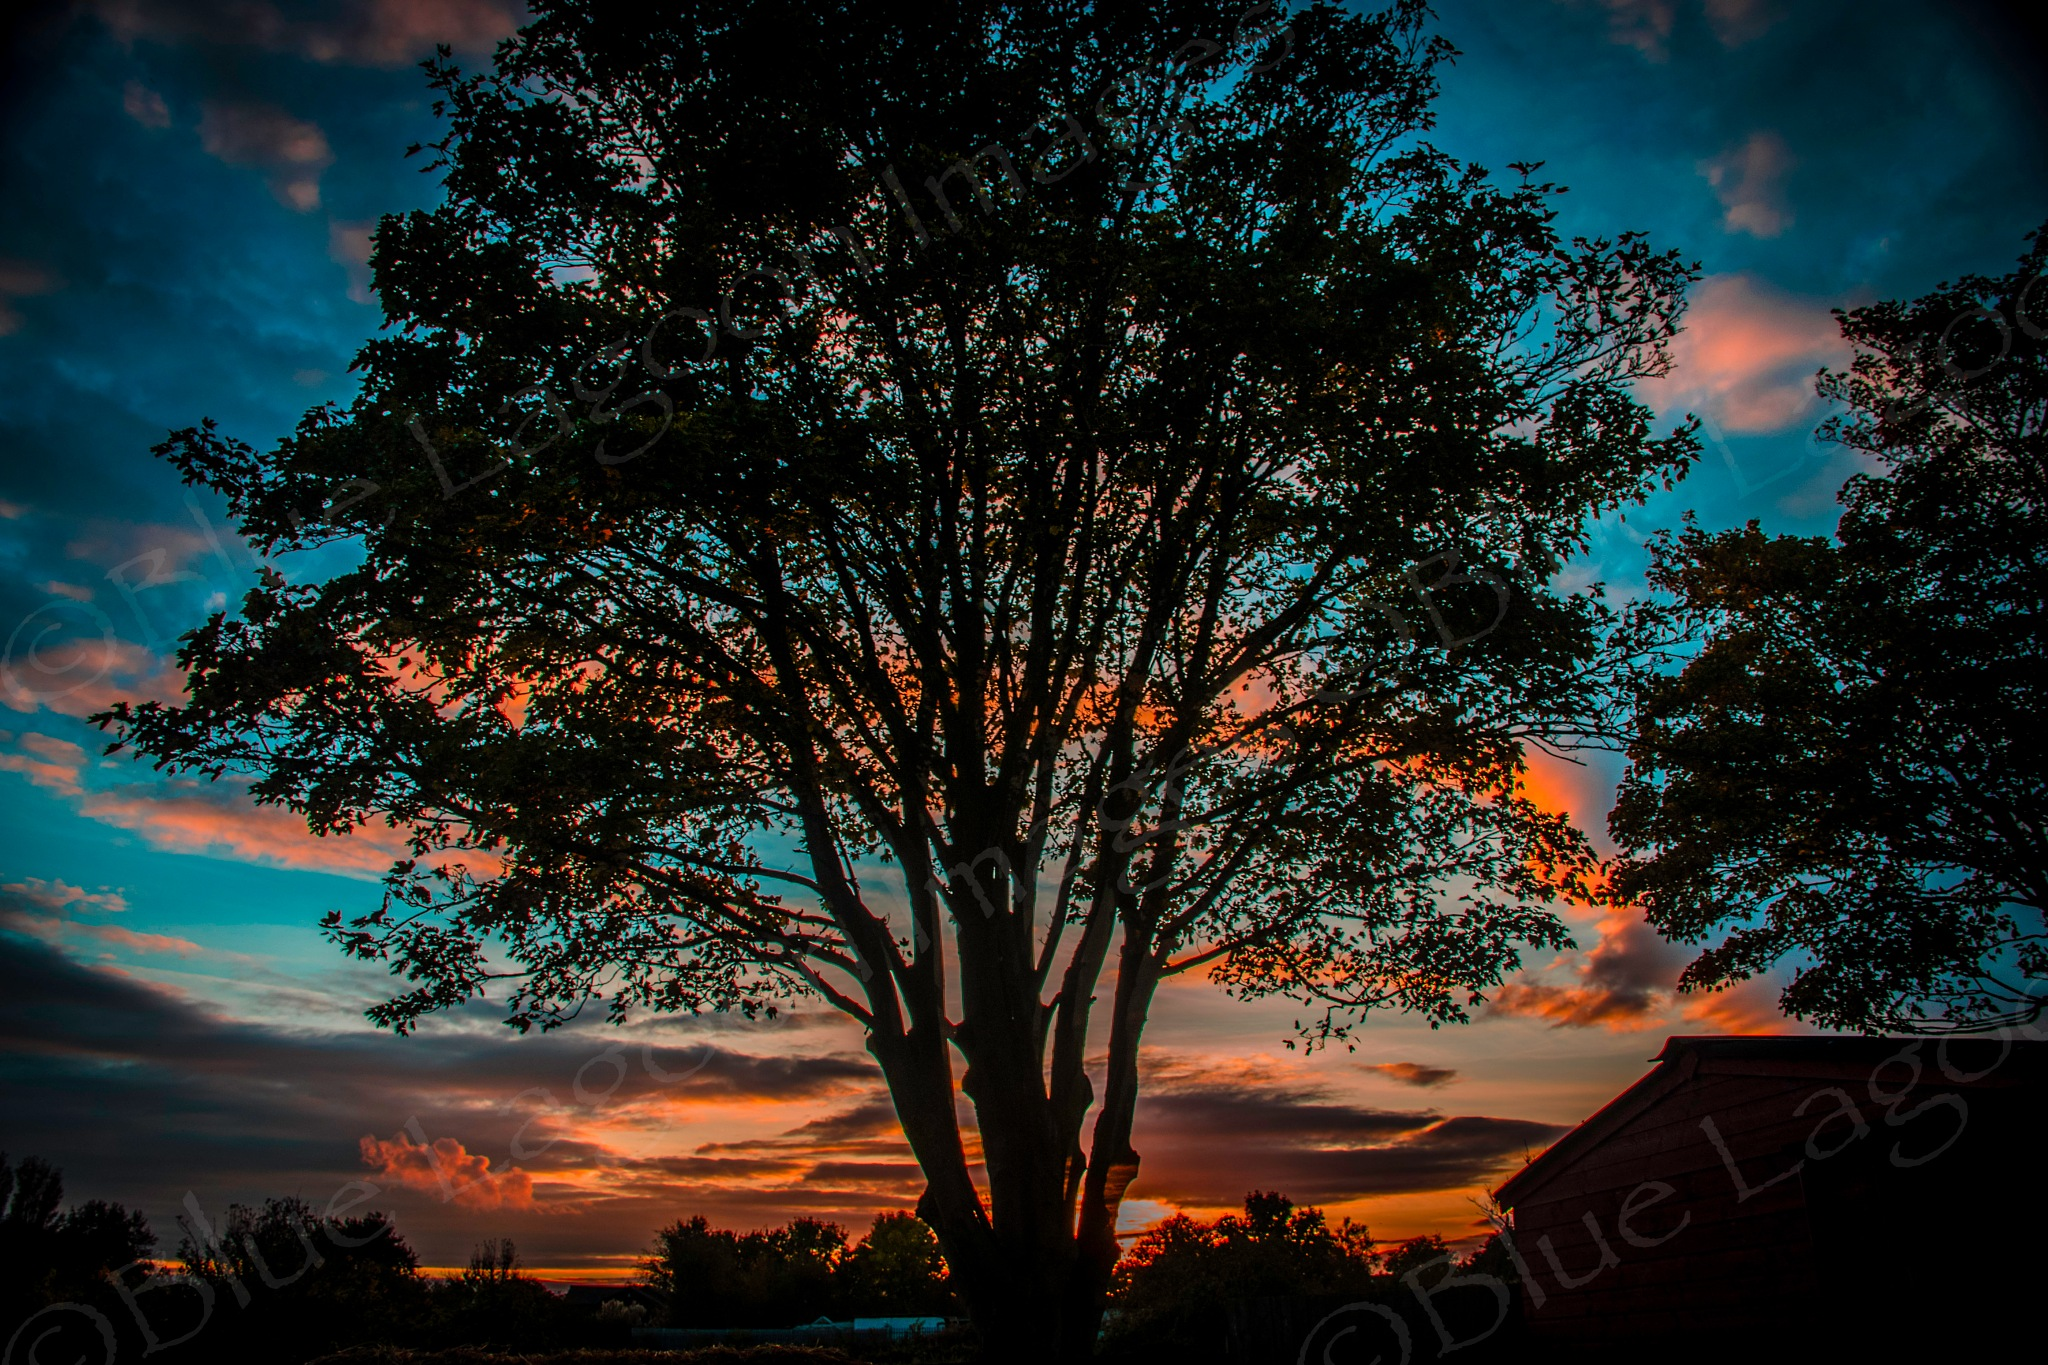 Sunset by Blue Lagoon Images